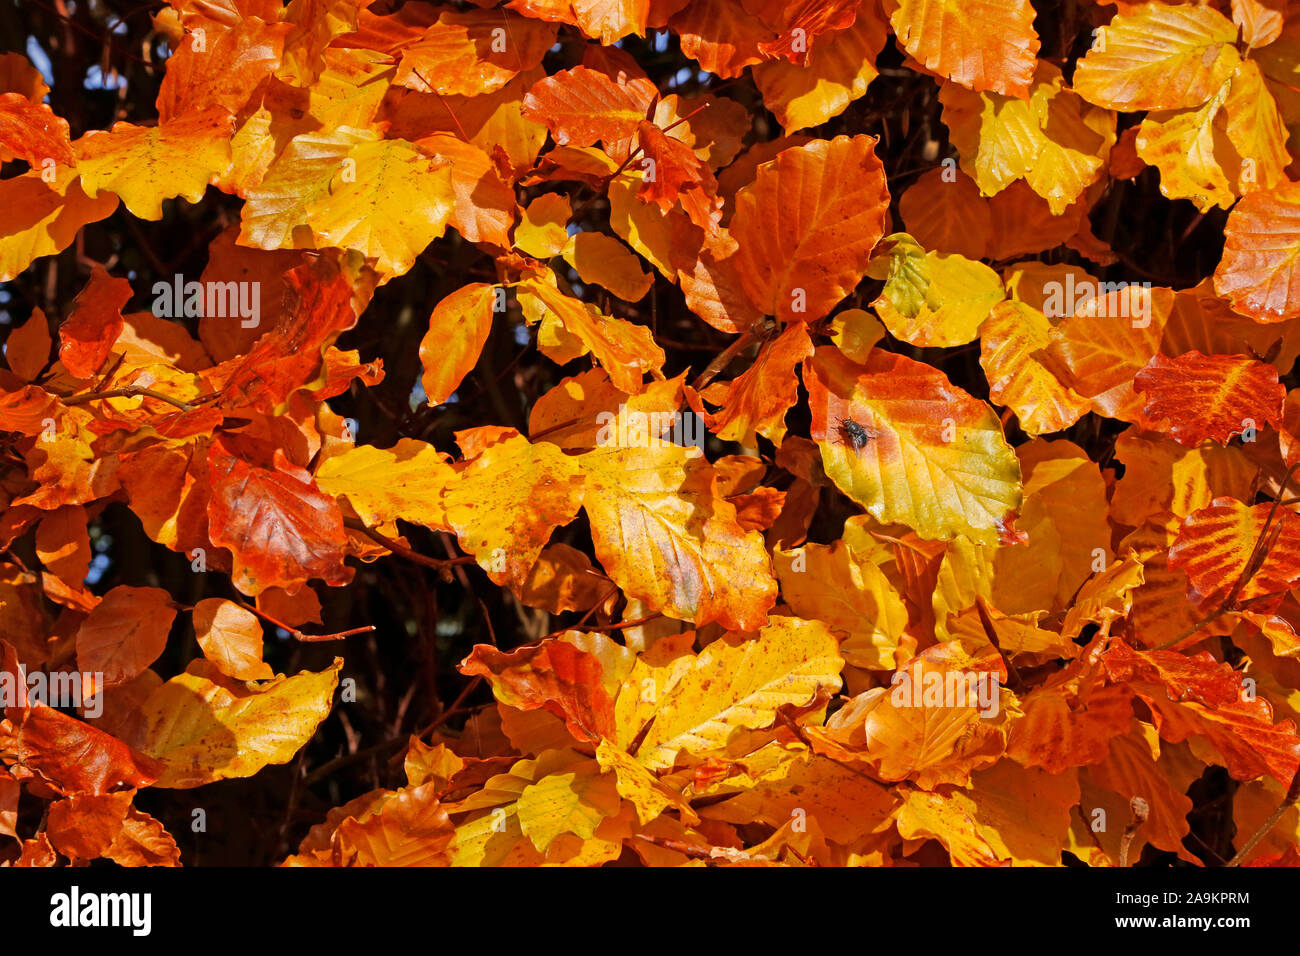 Autumn leaves and fruits in the countryside Stock Photo